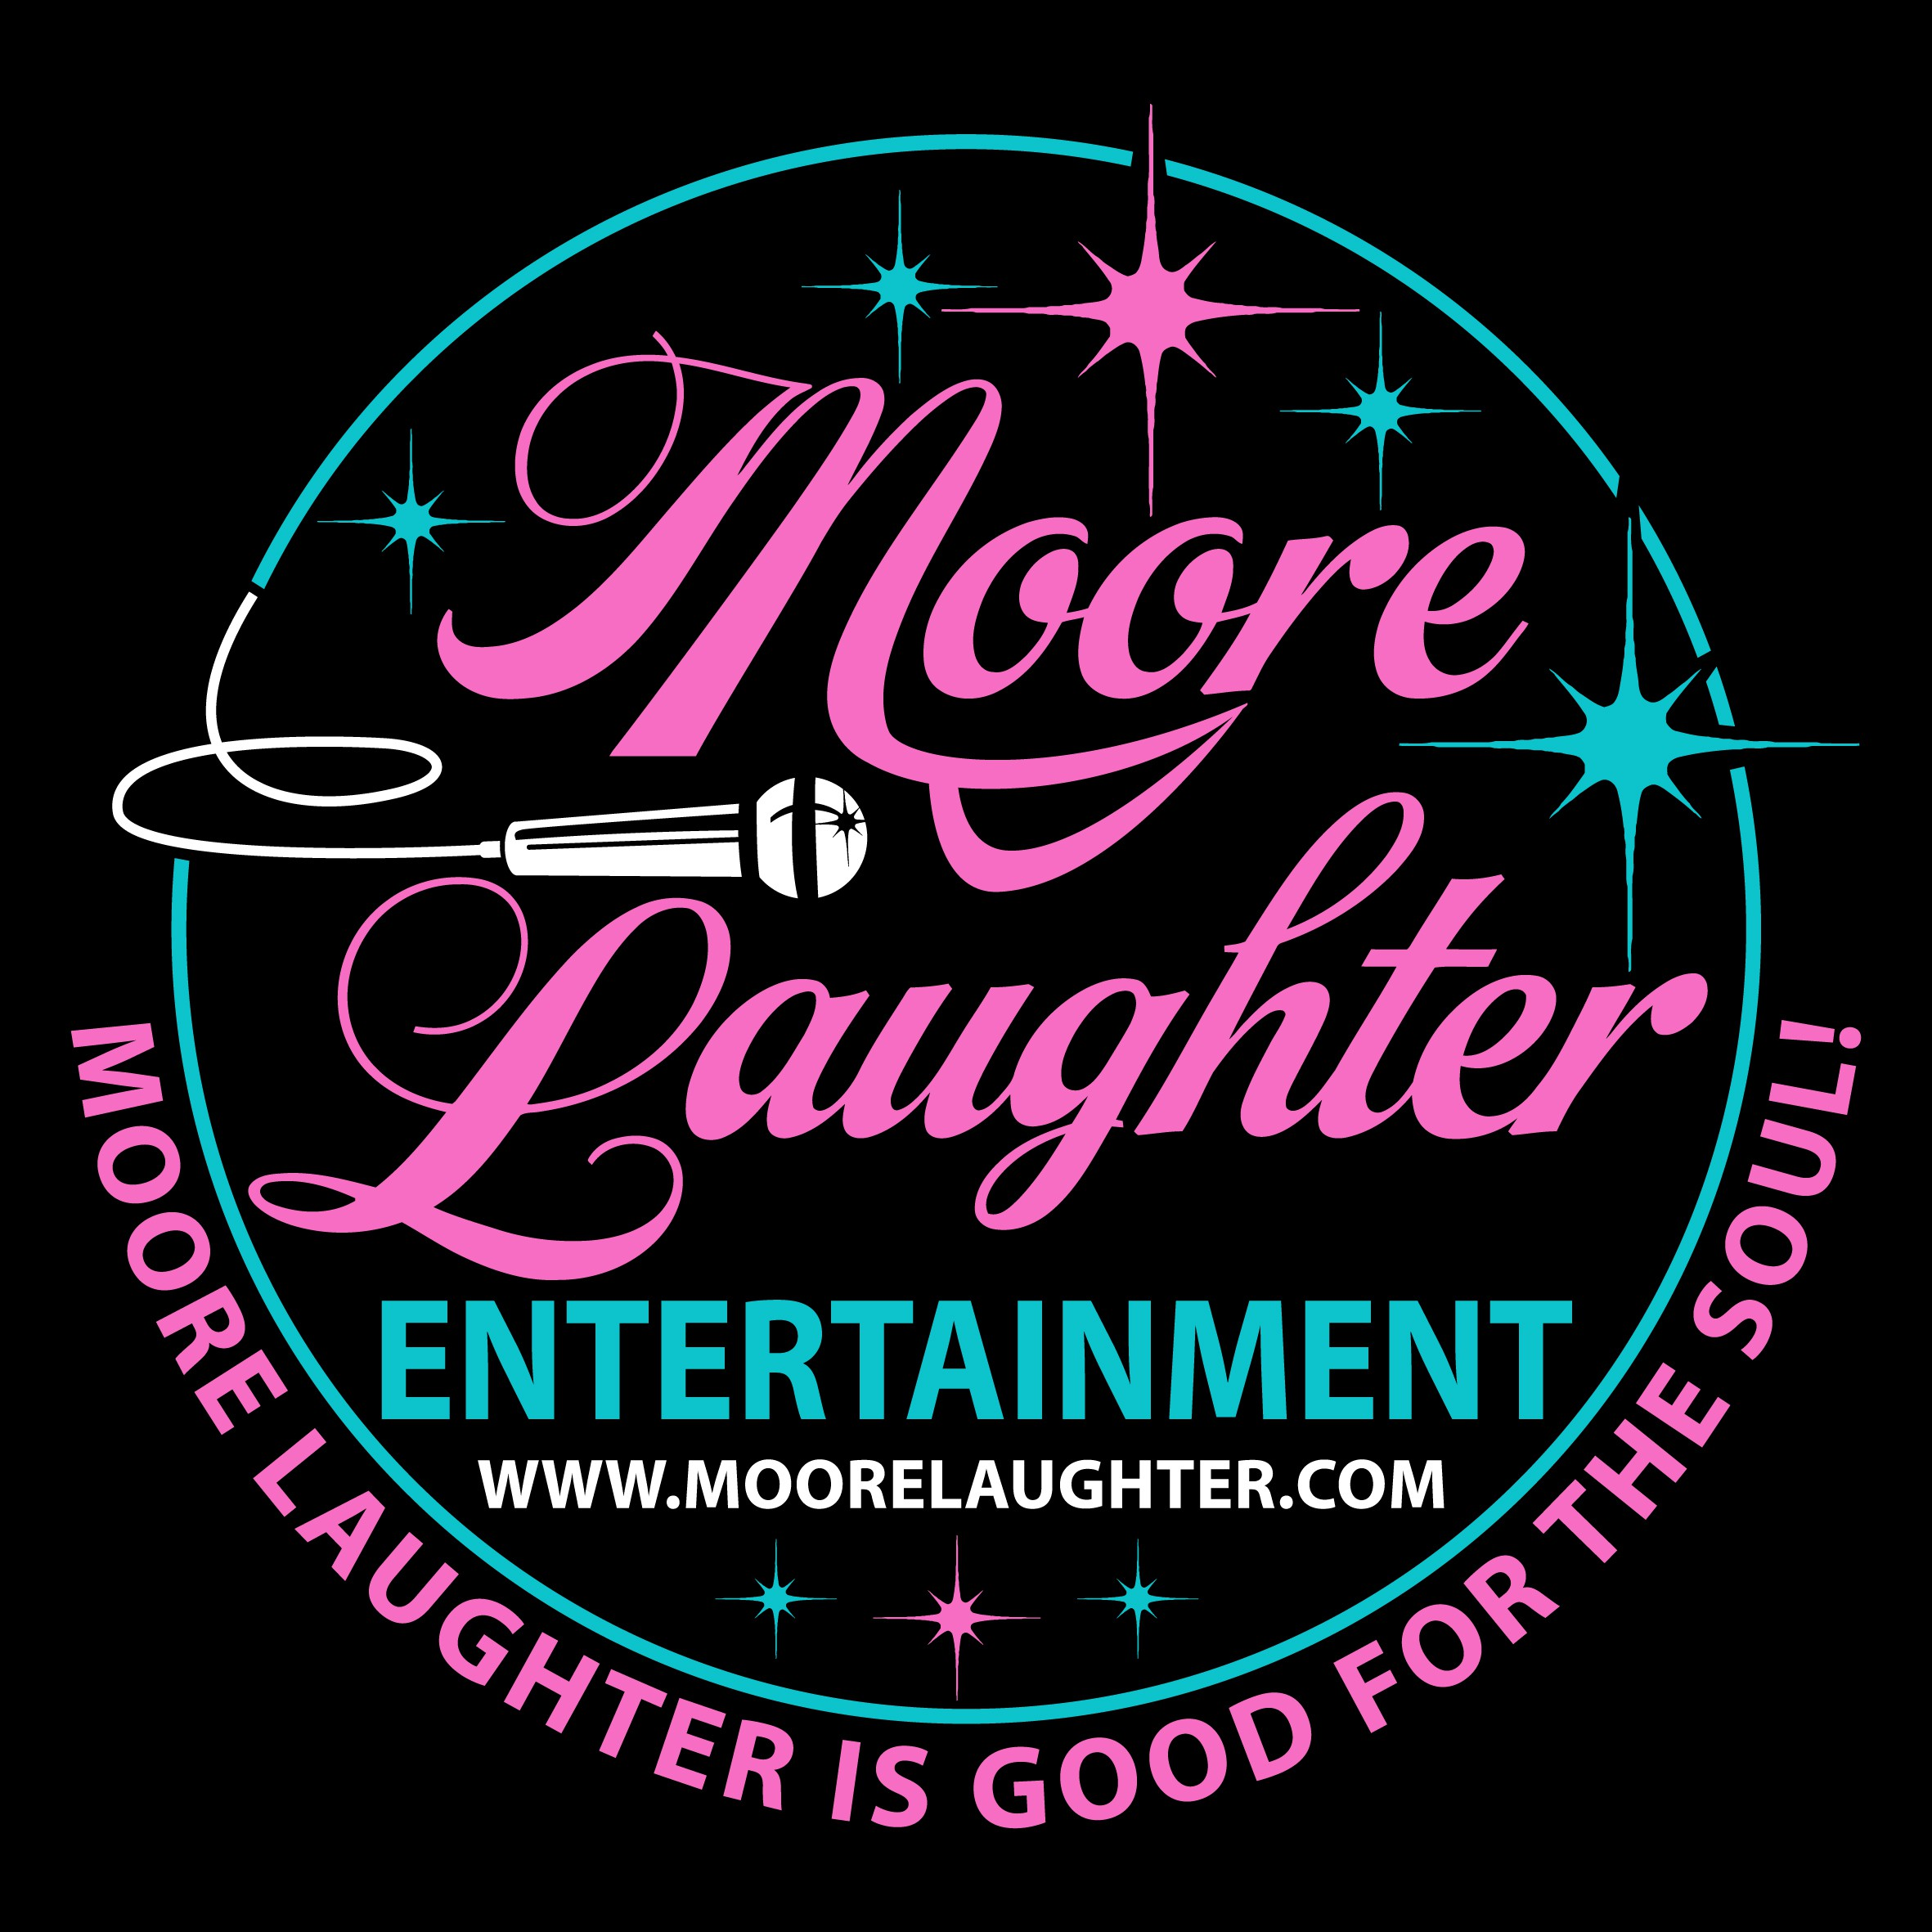 Create a logo that will bring Moore Laughter to the world.